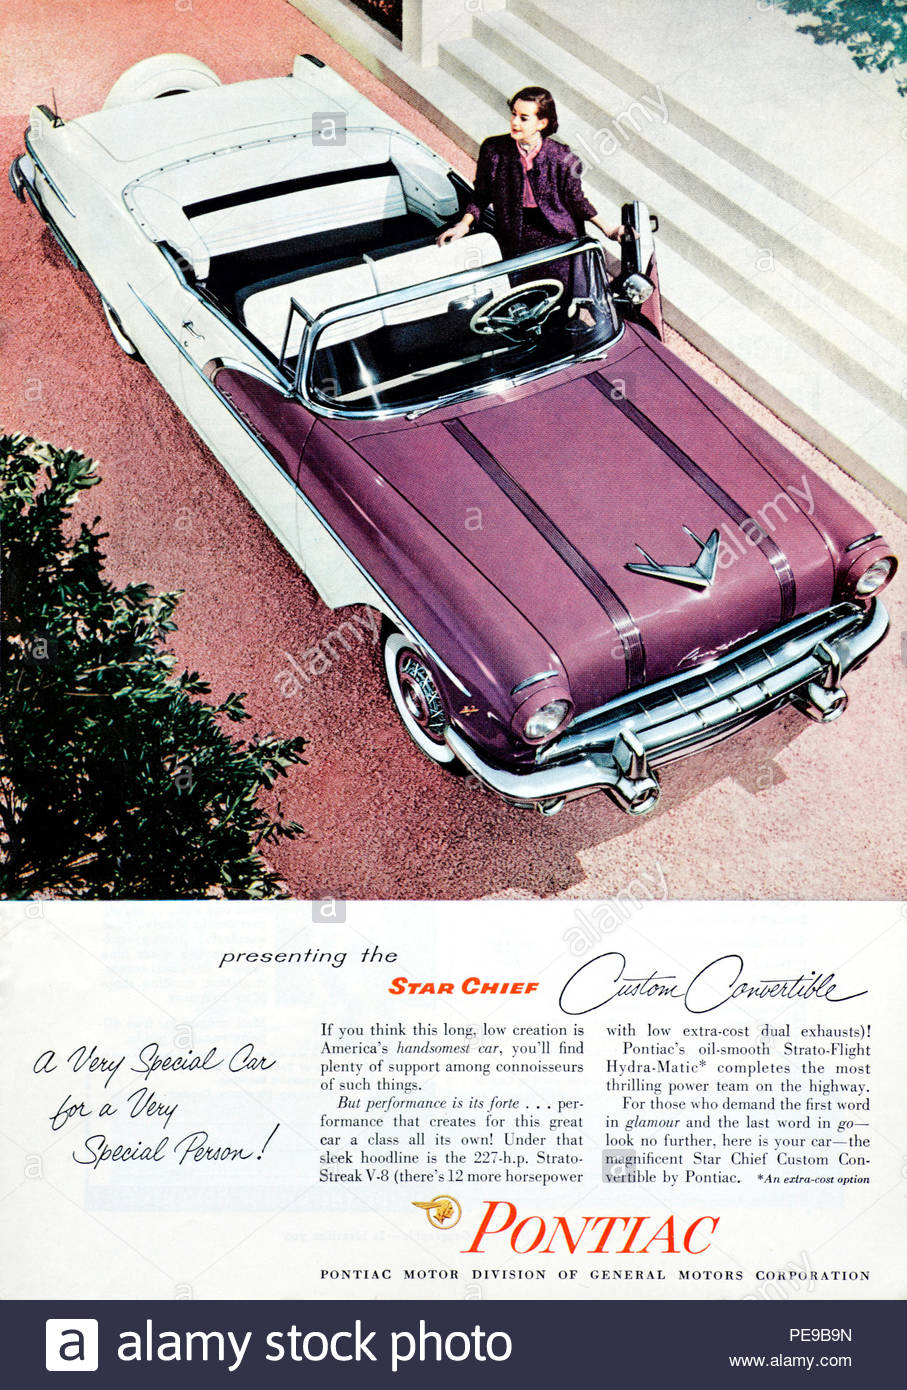 Vintage advertising for the Pontiac Star Chief Custom Convertible Car 1956 - Stock Image